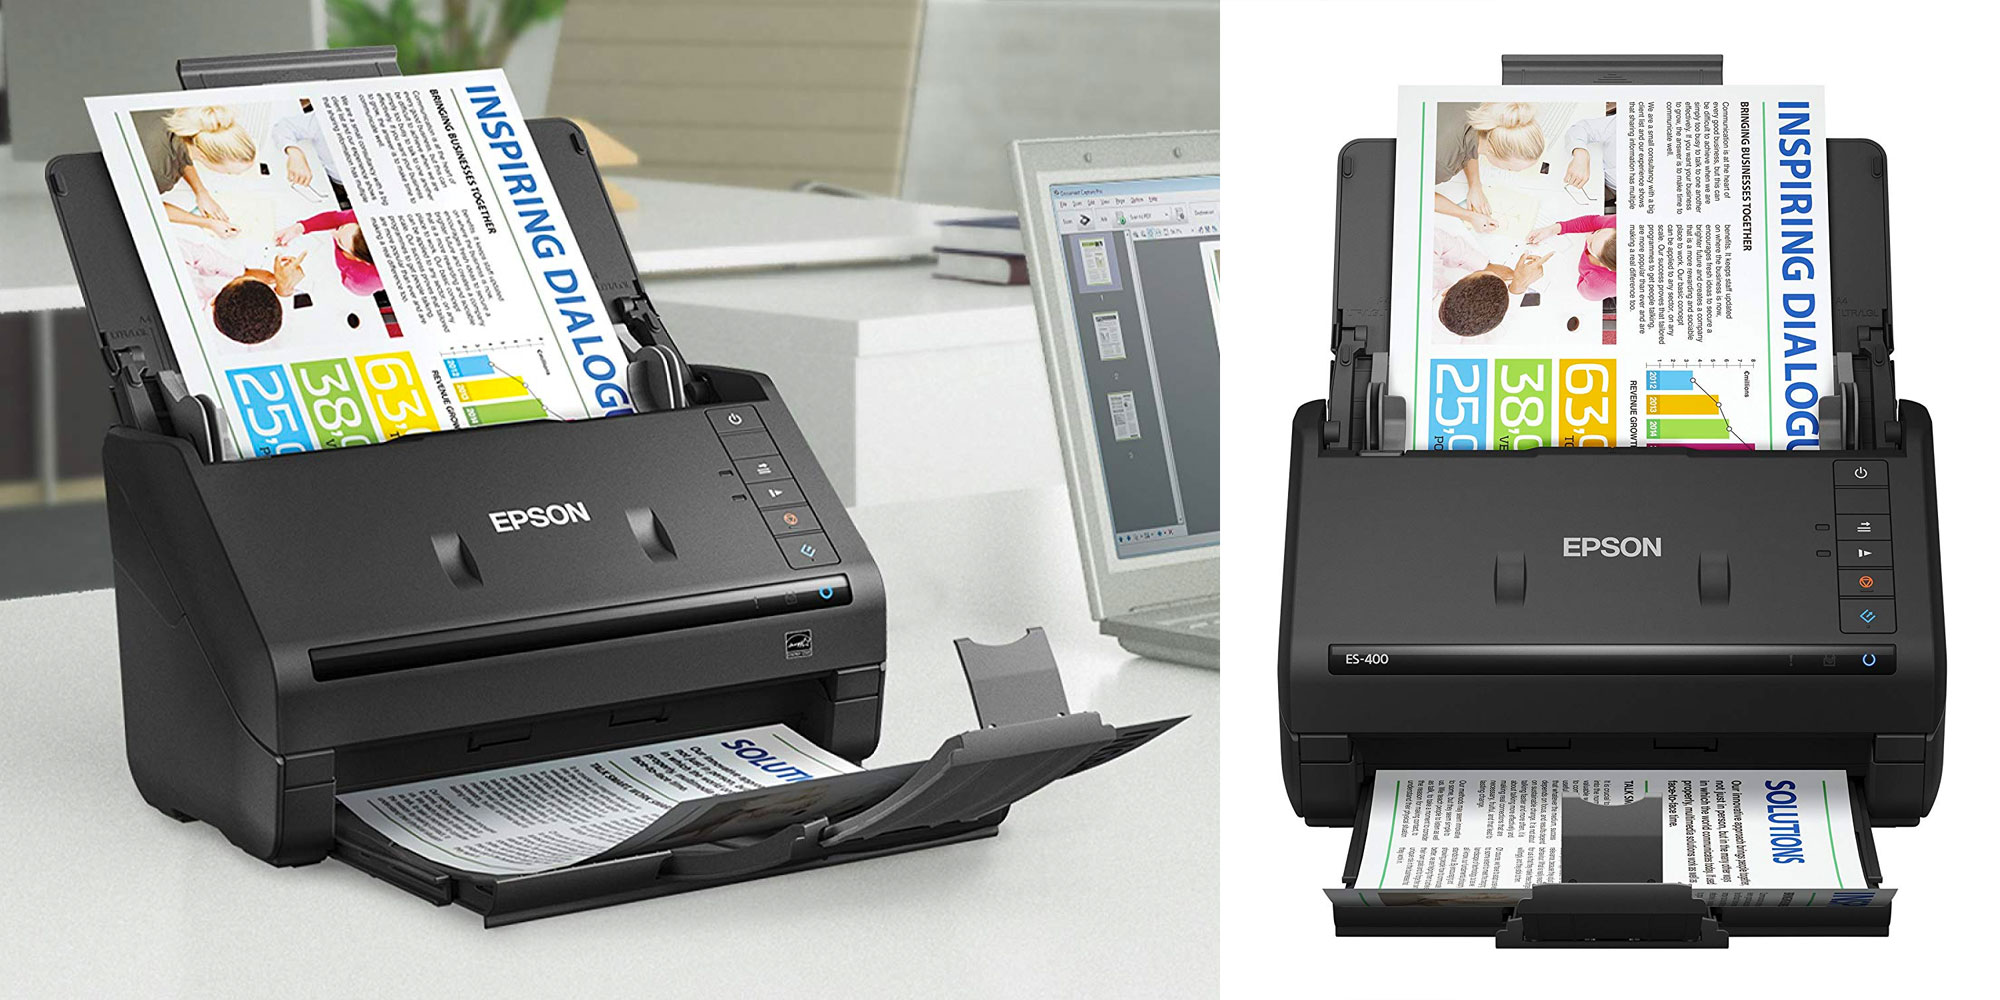 Epson's high-end WorkForce scanner has built-in OCR, cloud scanning, more: $230 (Reg. $330)